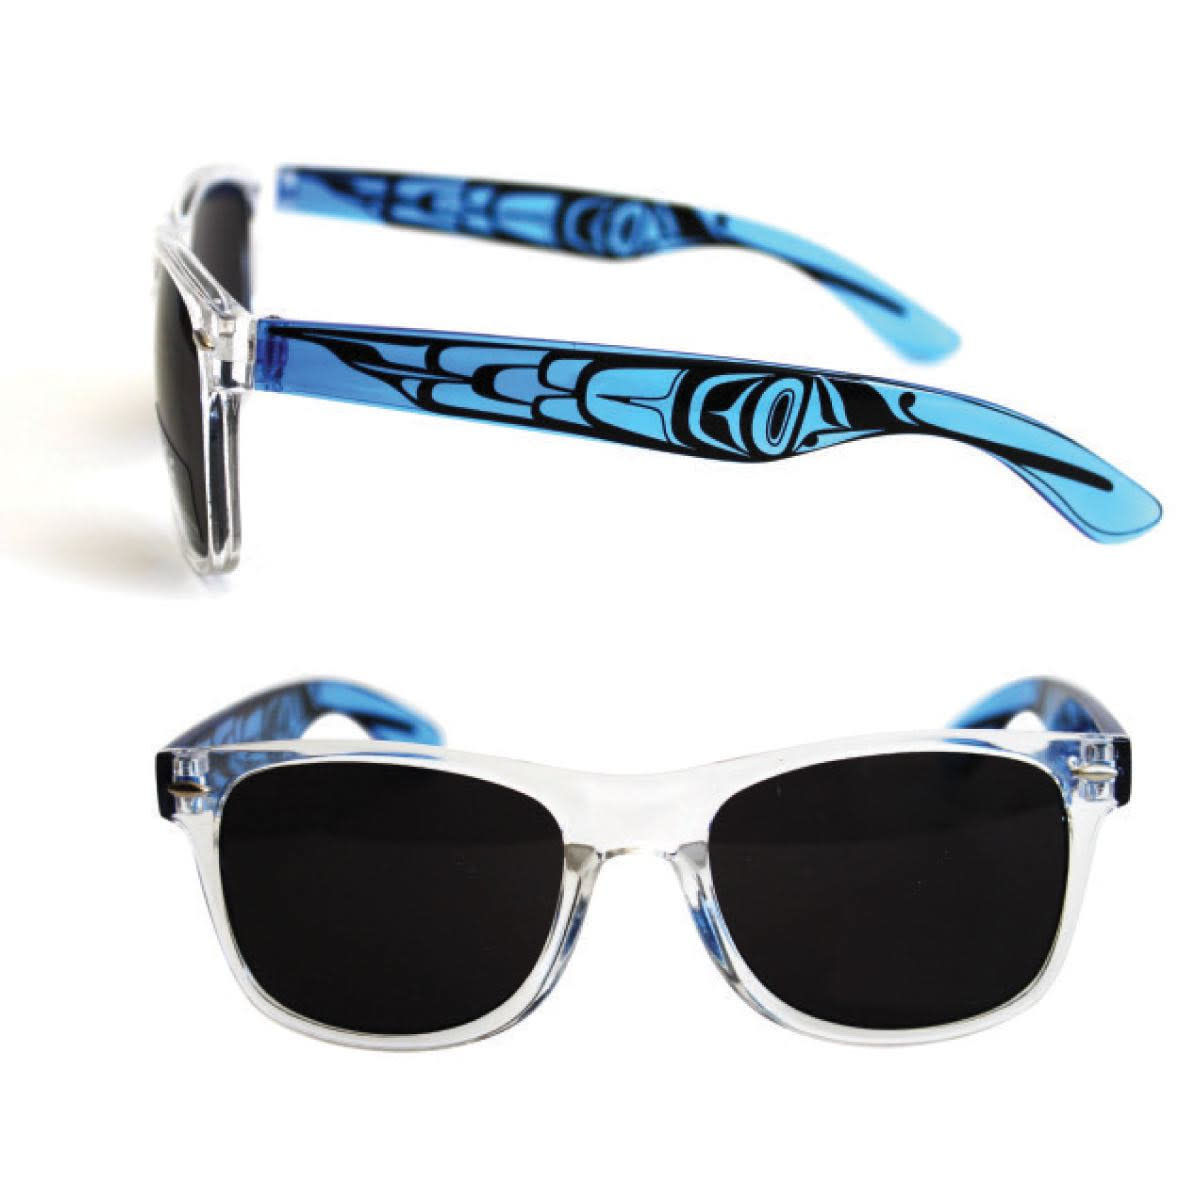 Polarized Sunglasses with Clear Fronts & Designed clear colored sides.-2